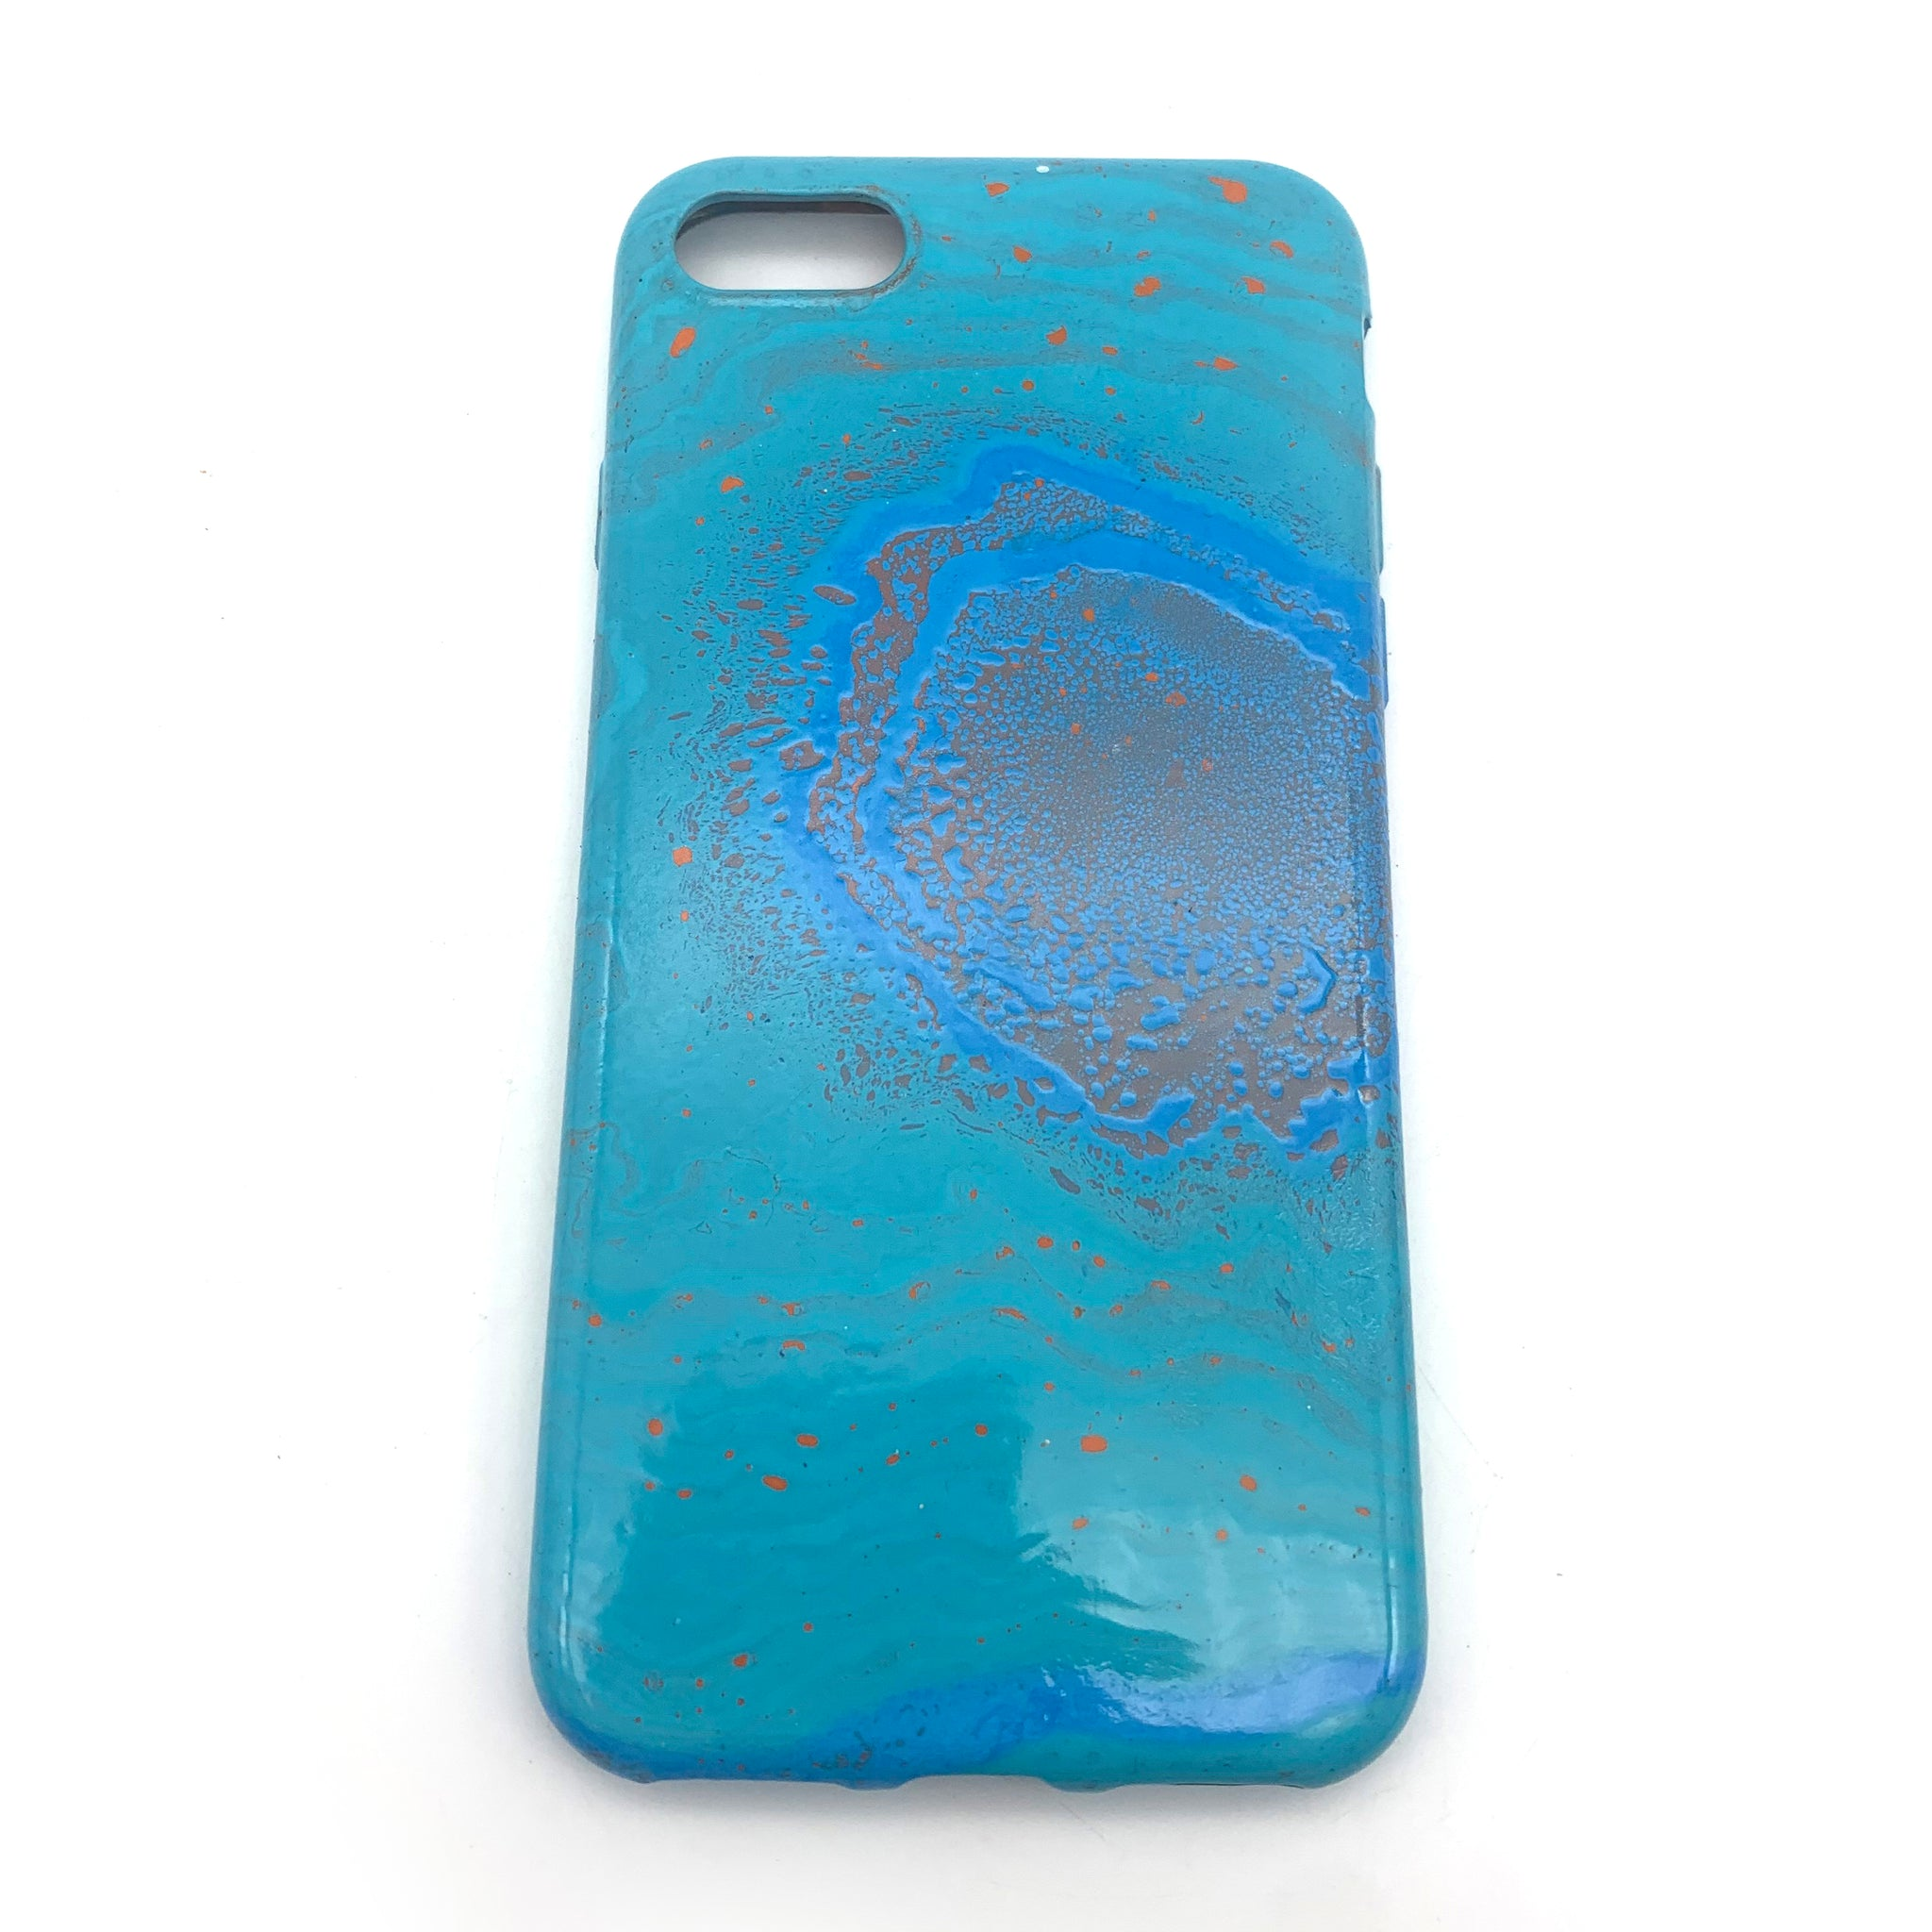 Hydro Dipped Phone Cases in Blue Aqua and Orange- iPhone 7, iPhone 8, iPhone SE (2020)